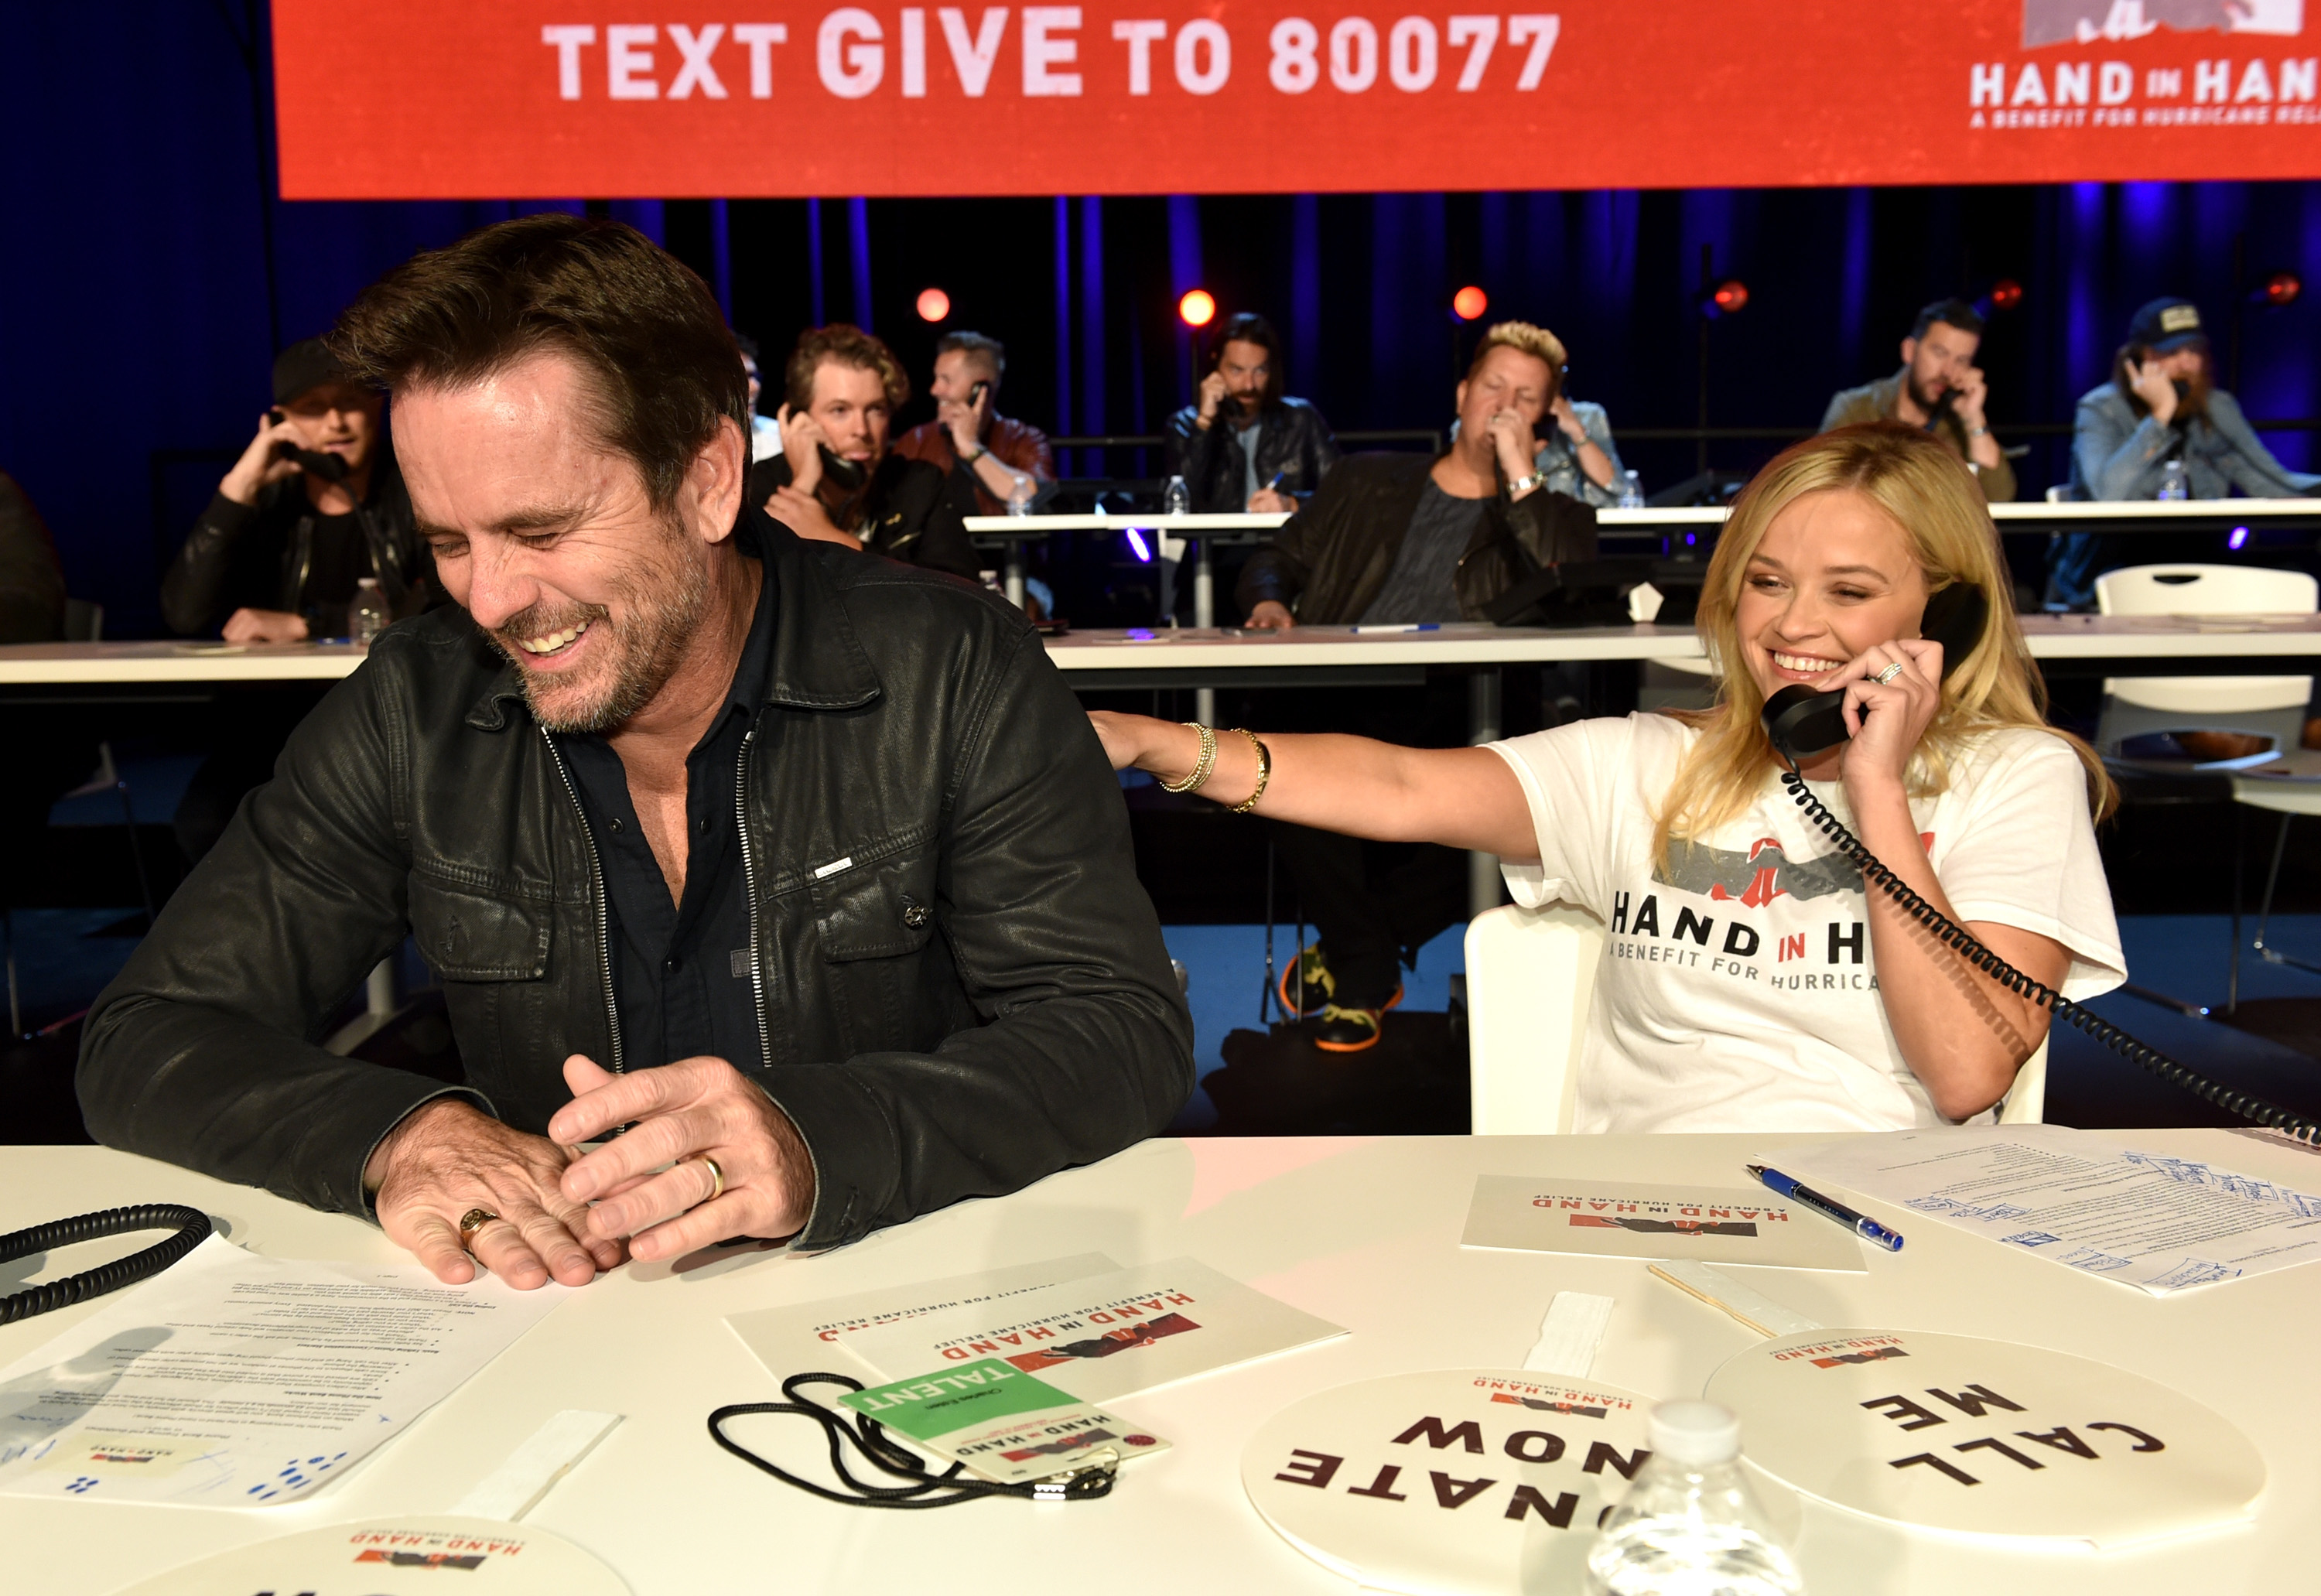 """<div class=""""meta image-caption""""><div class=""""origin-logo origin-image none""""><span>none</span></div><span class=""""caption-text"""">Charles Esten and Reese Witherspoon attend Hand in Hand: A Benefit for Hurricane Relief at the Grand Ole Opry House on September 12, 2017 in Nashville, Tennessee. (John Shearer/Hand in Hand/Getty Images)</span></div>"""